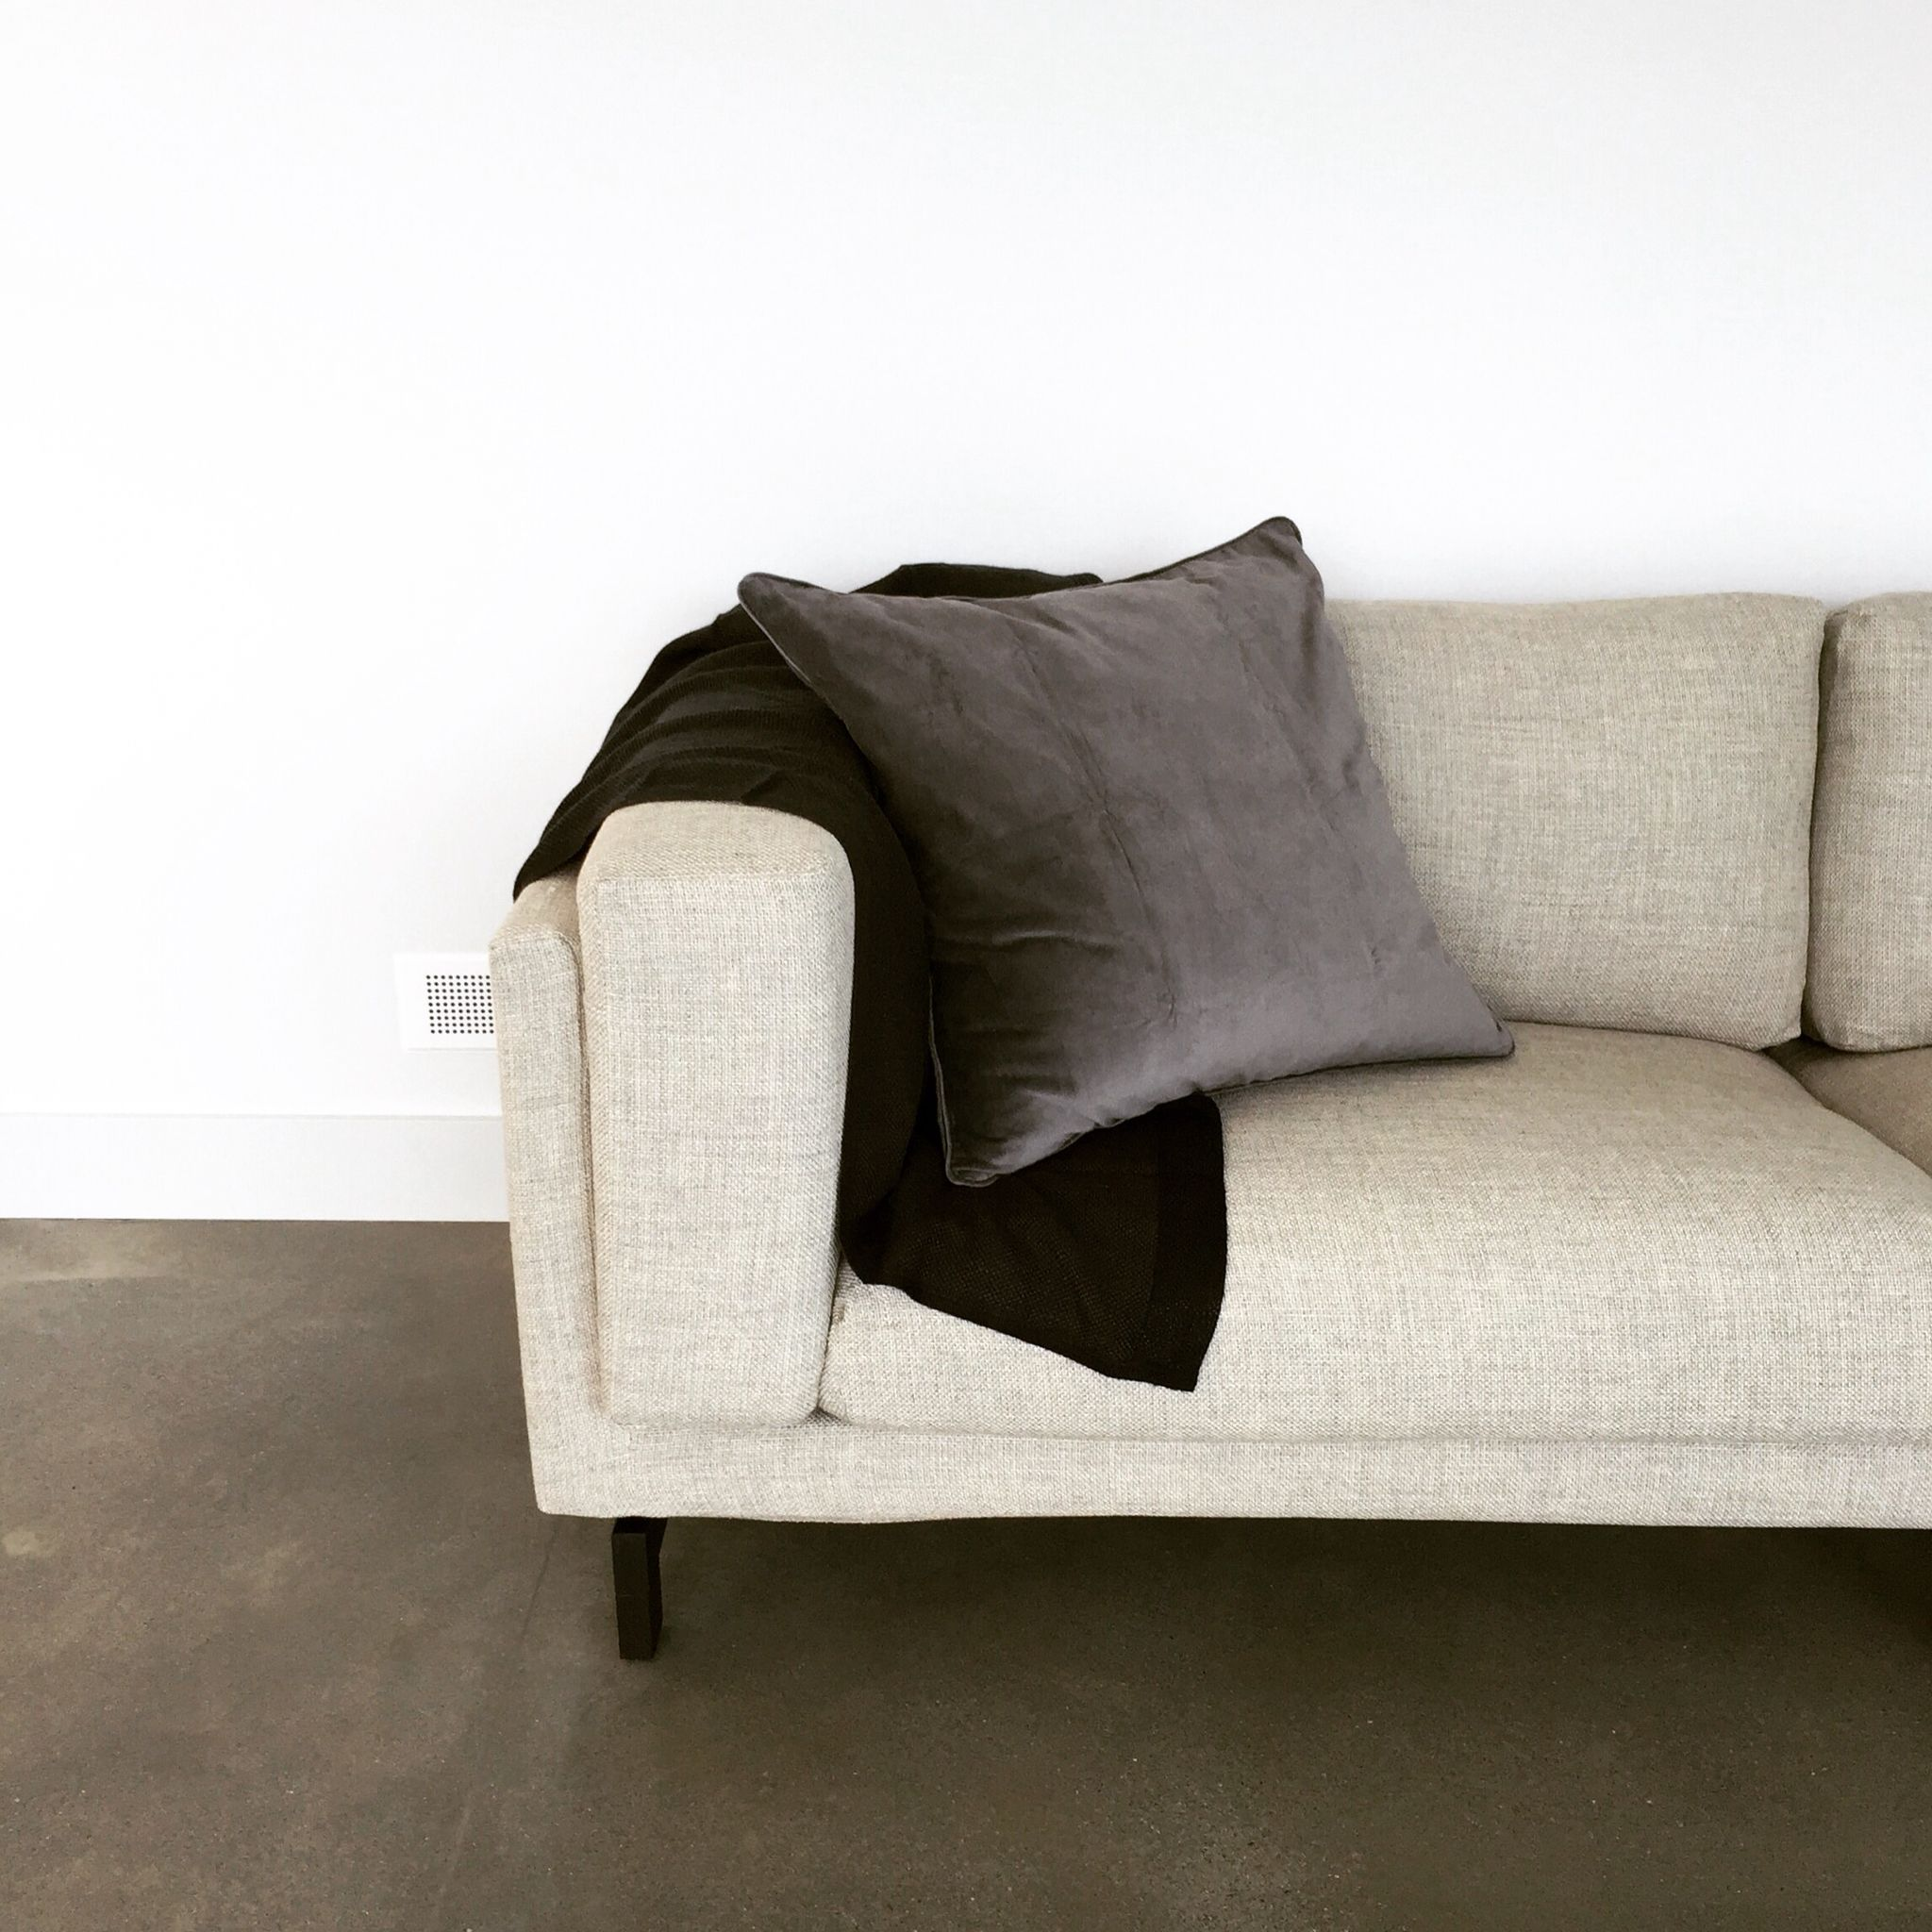 Ikea Sofa Nockeby Test Ikea Nockeby Home Details Pinterest Interiors And House